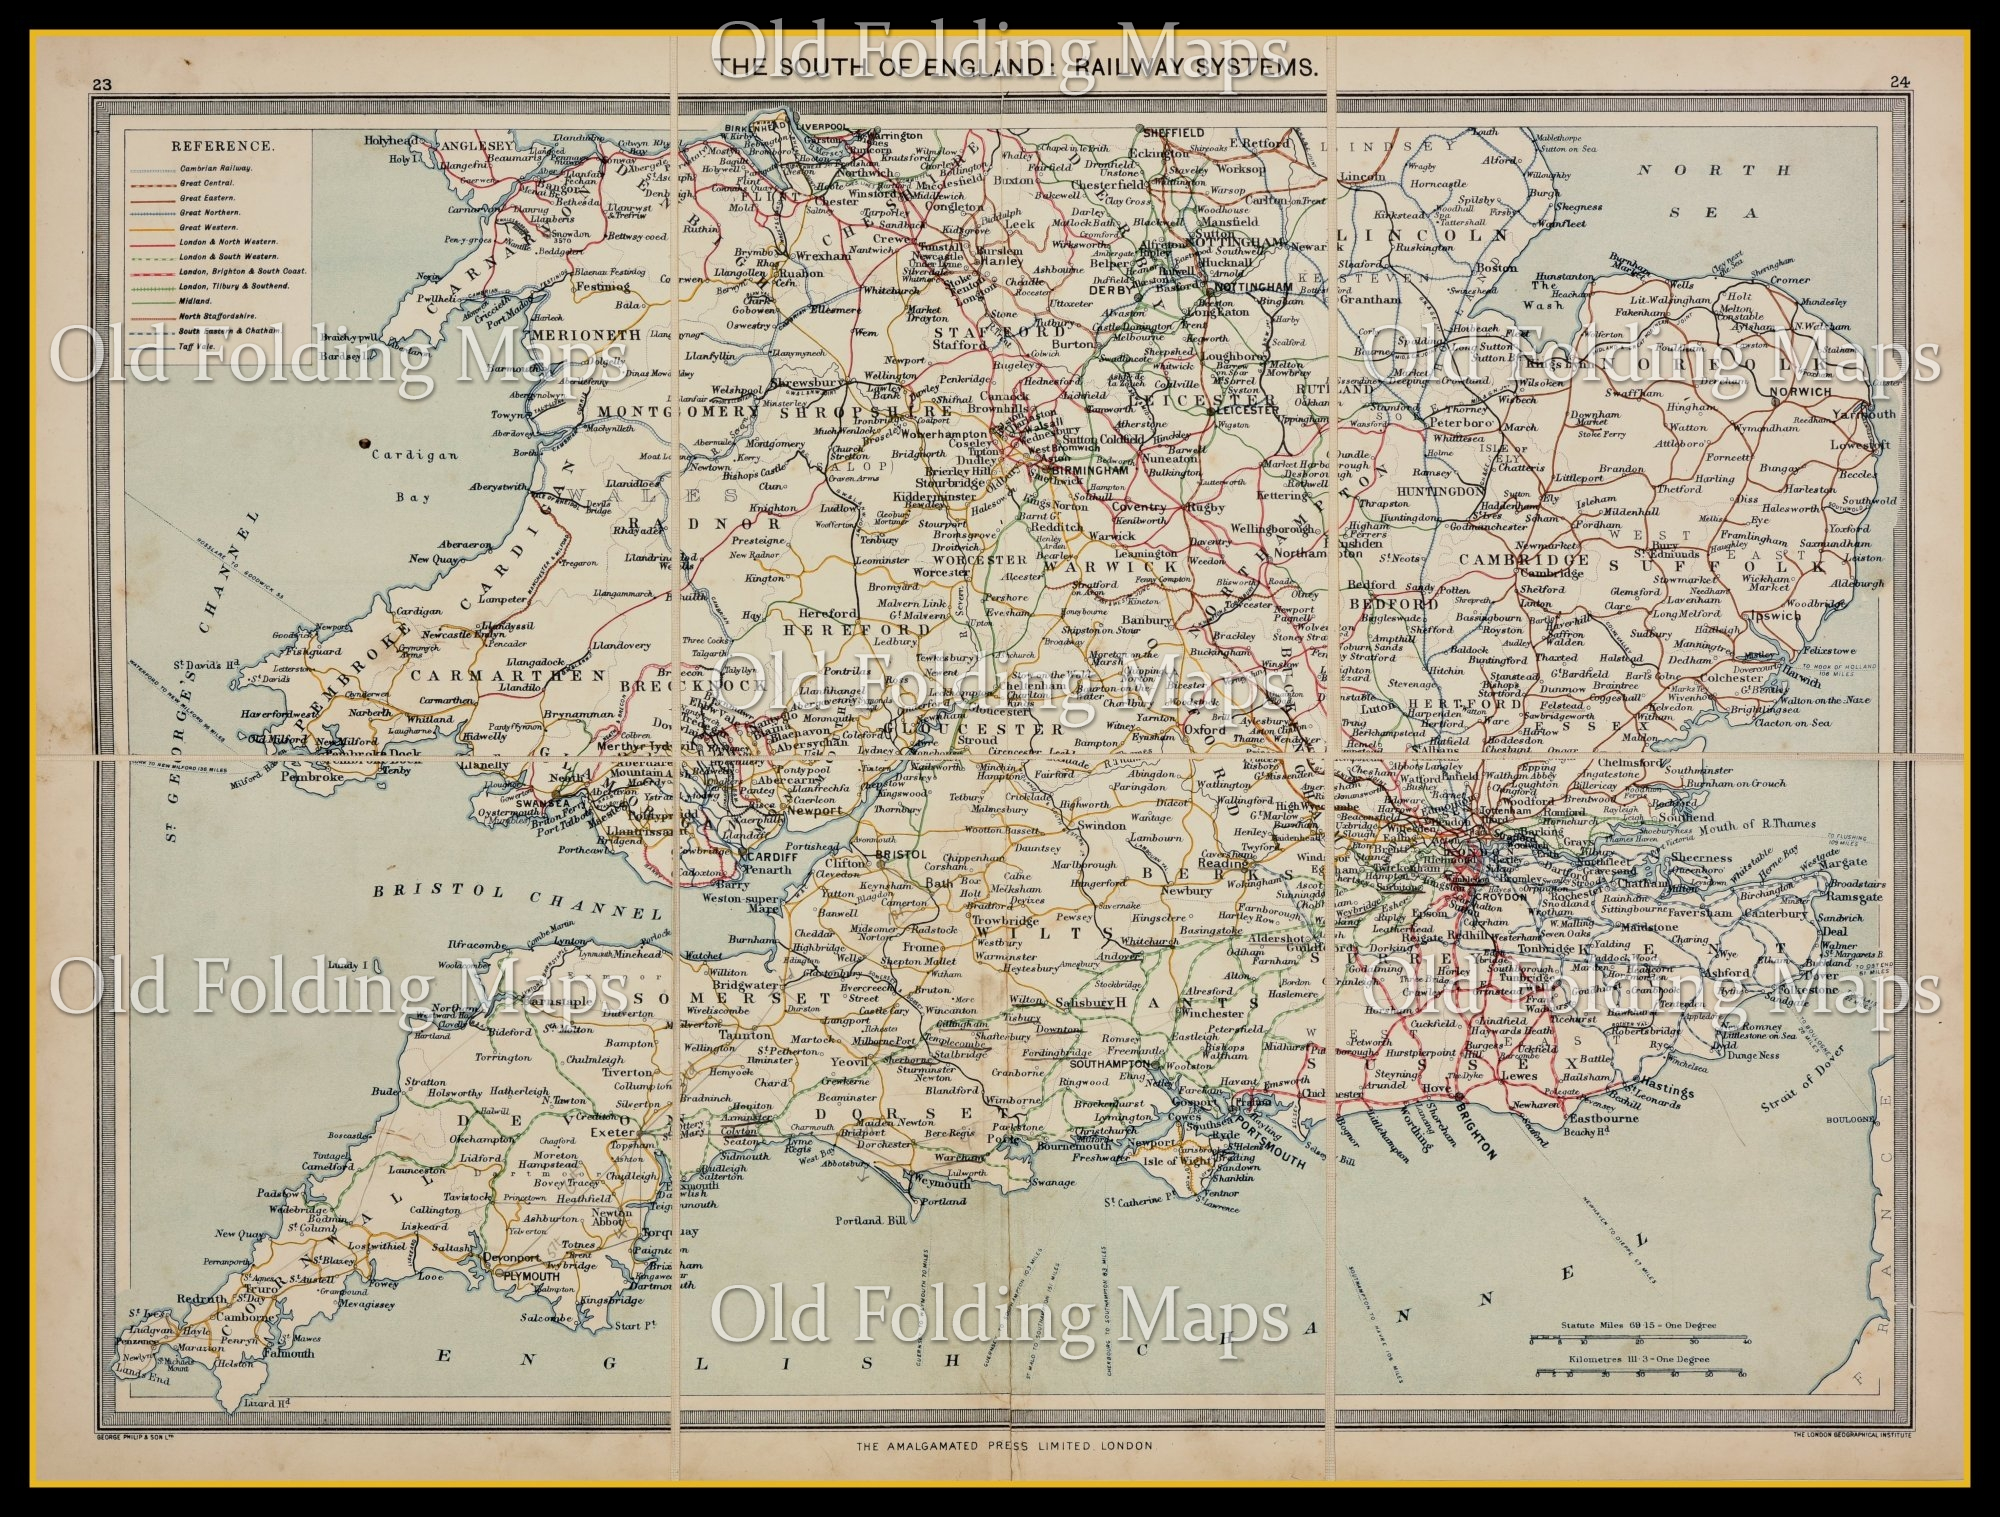 Old Map of South of England Railway Systems circa 1900